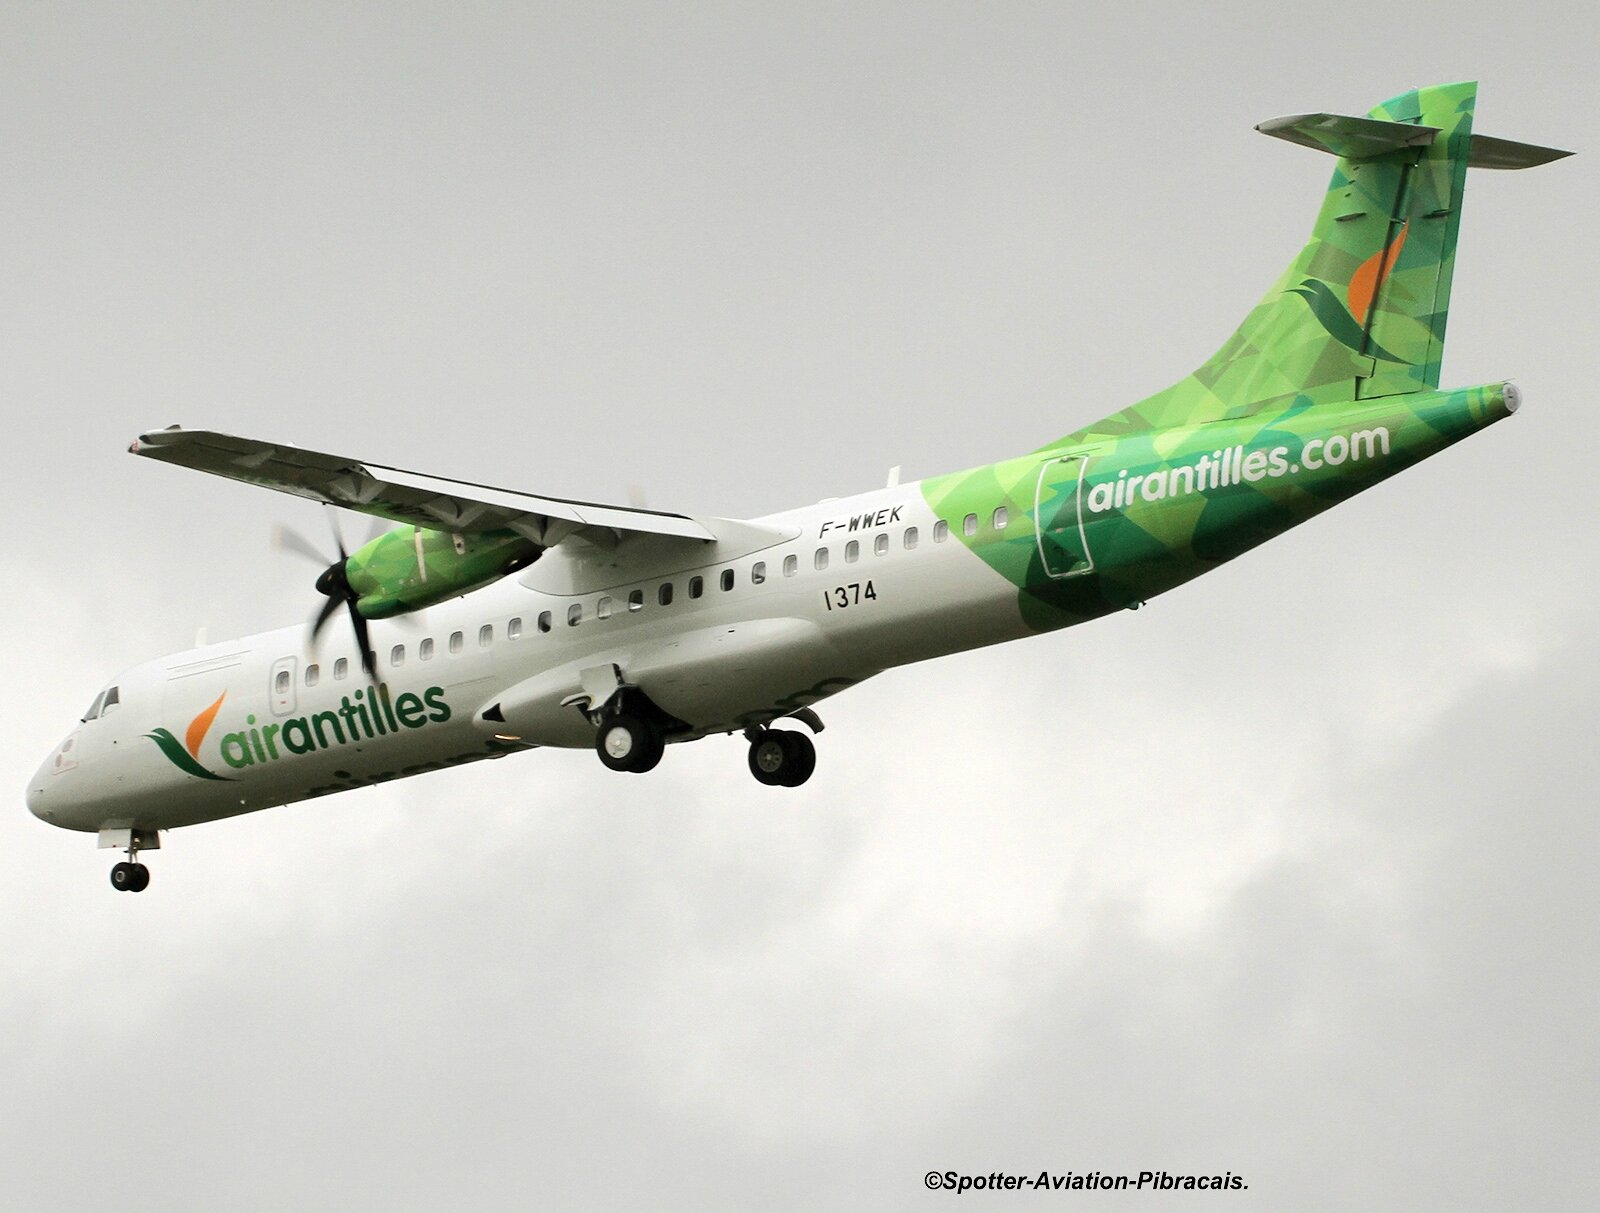 Air Antilles Express.